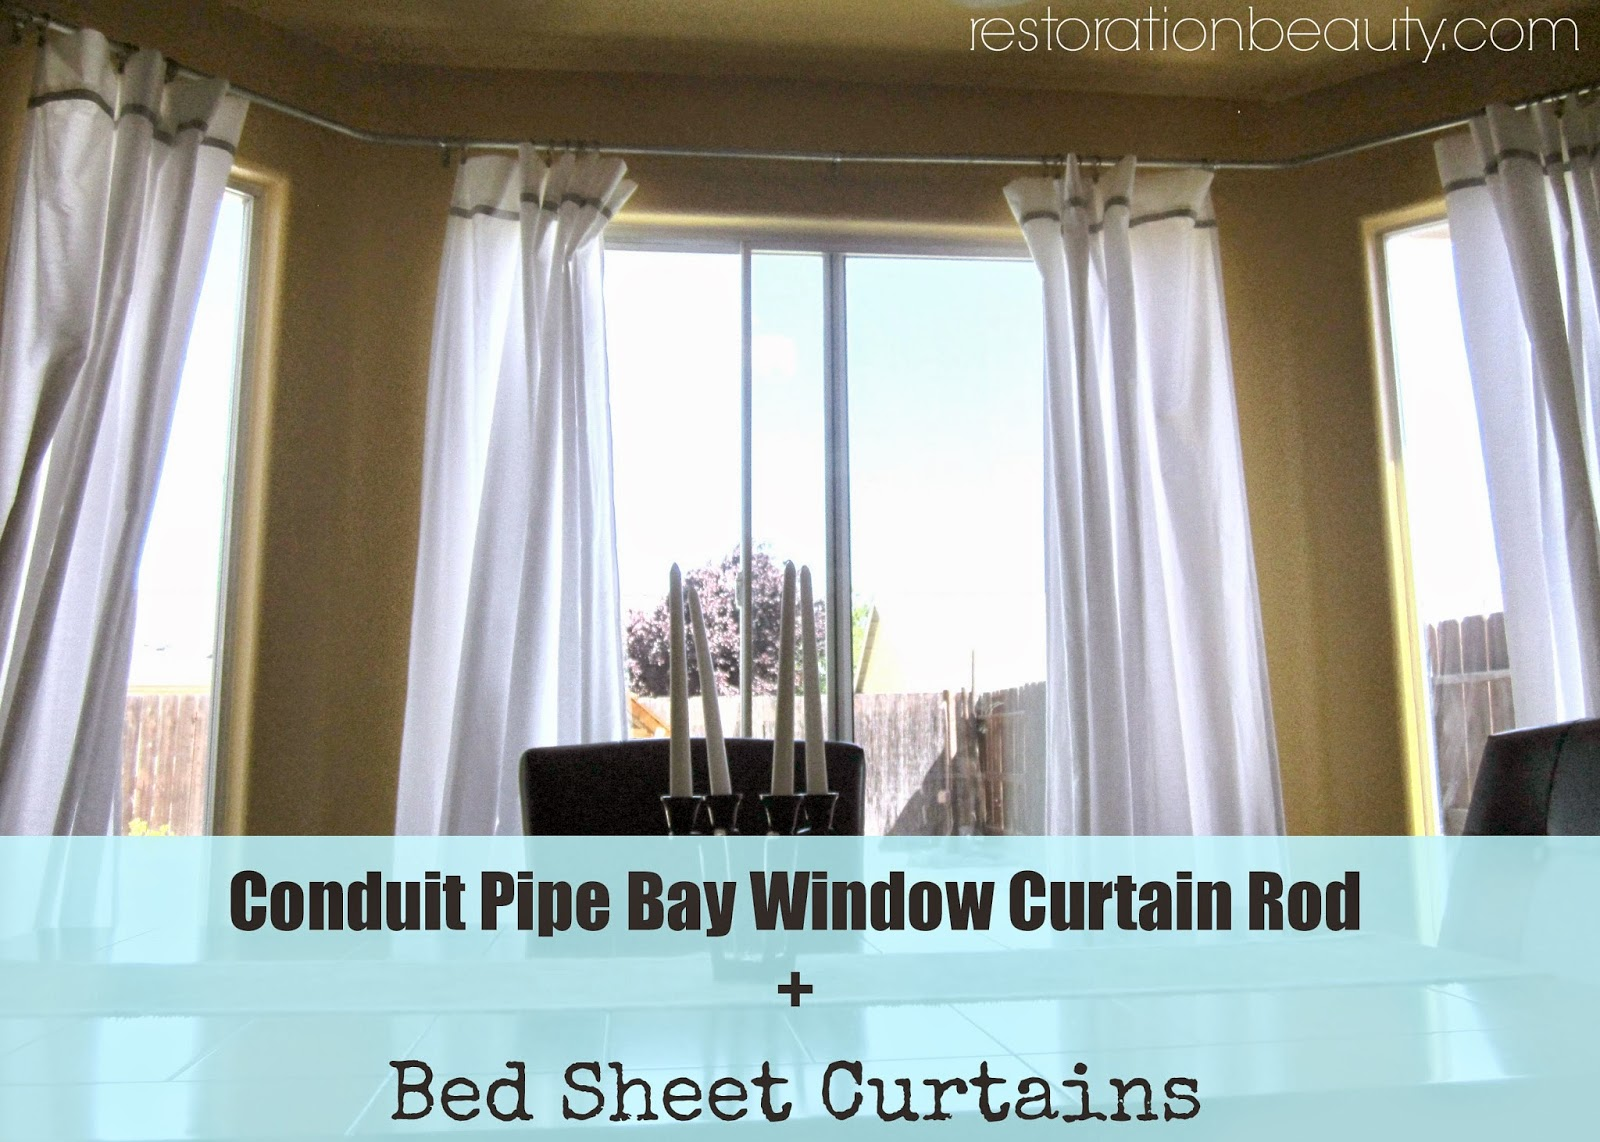 bay window kitchen curtains red aid mixer restoration beauty conduit pipe curtain rod